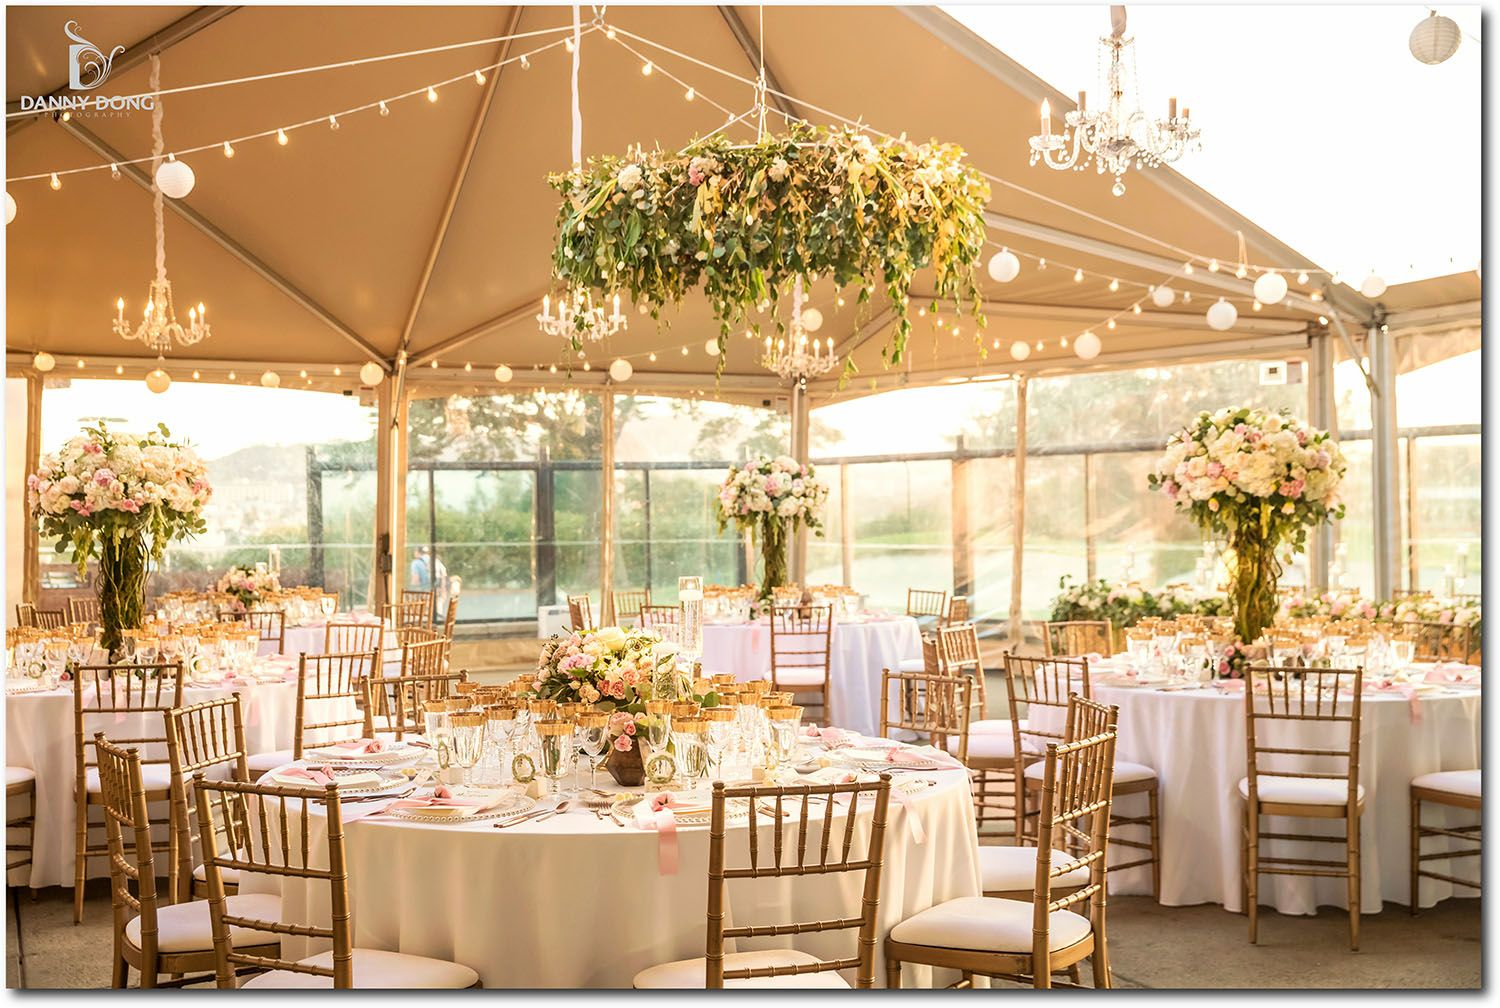 Presidio Golf Course Wedding Event Planning Styling Design Manna Sun Events Www Mannasunevents Photo By Danny Dong Photography